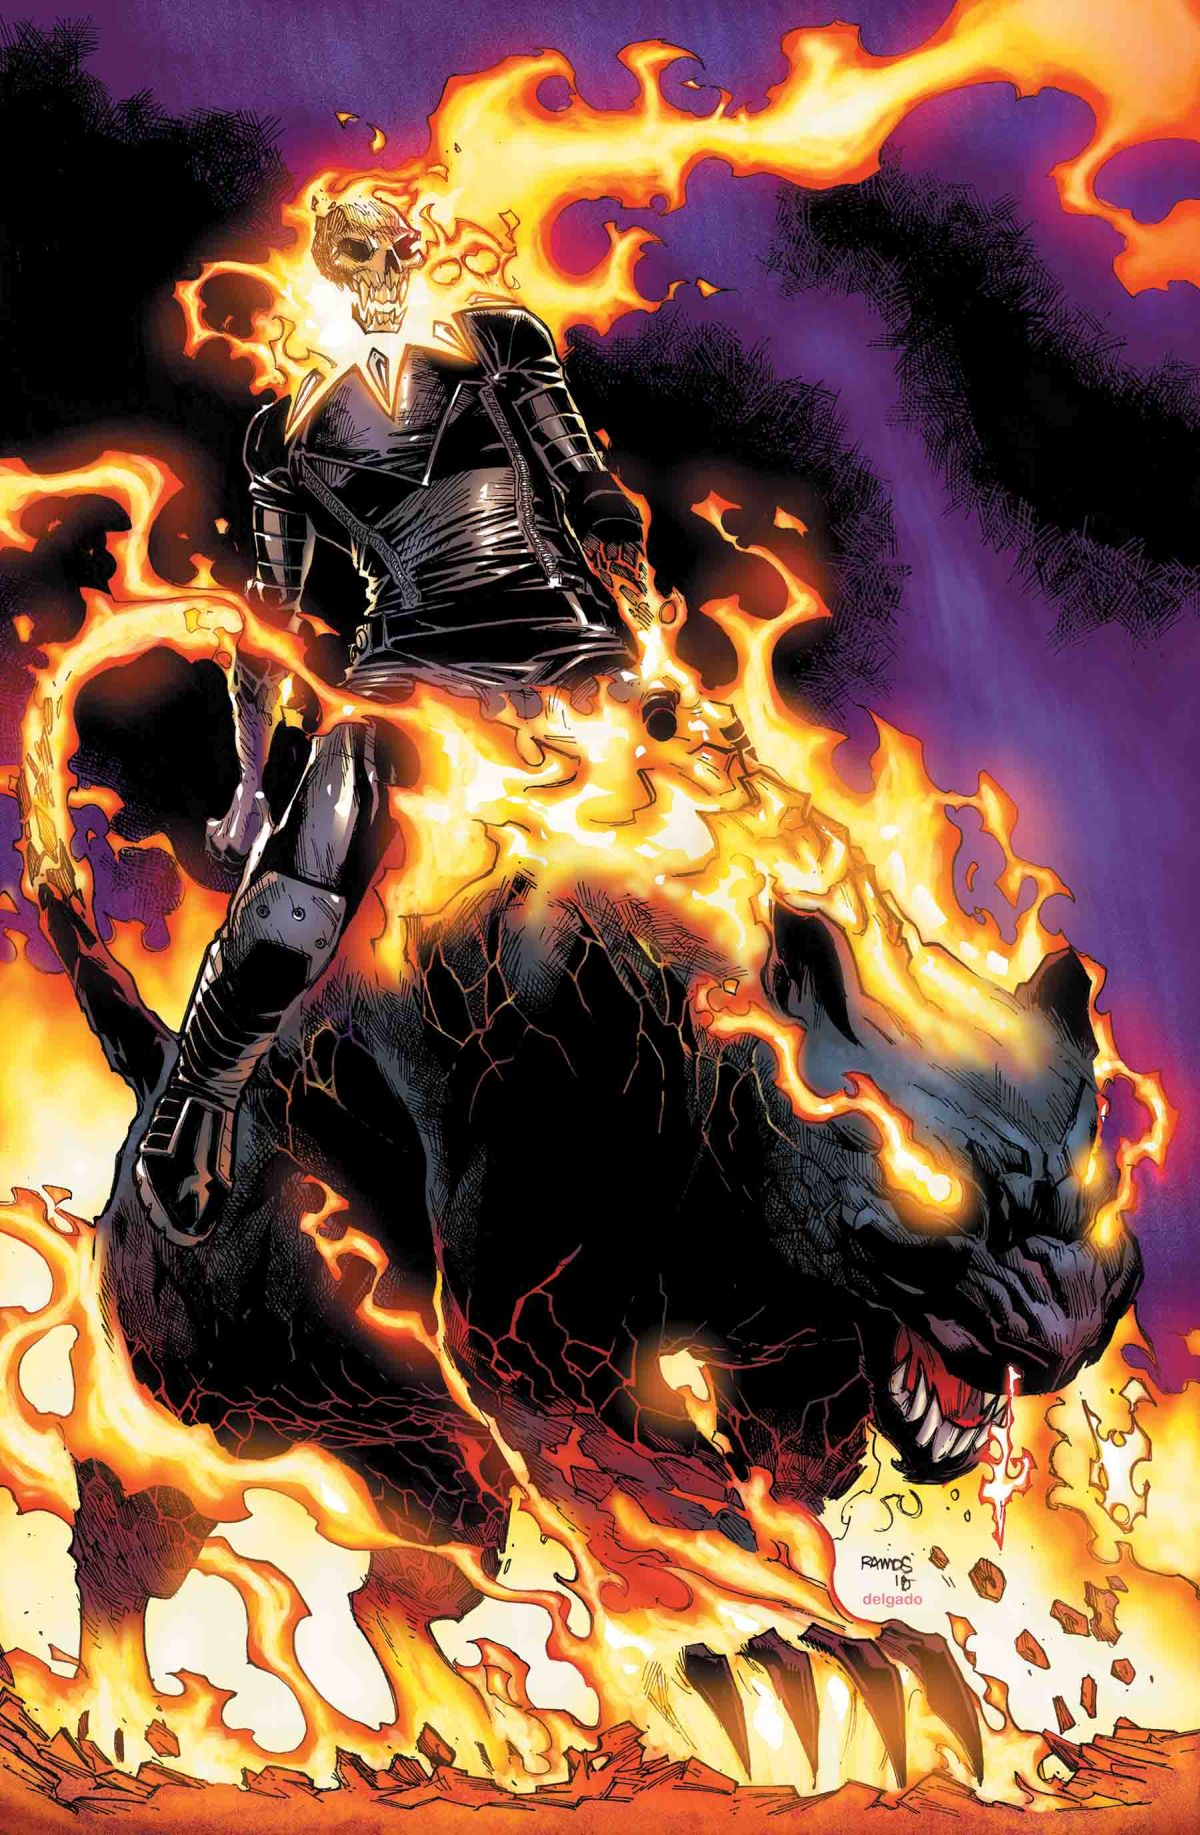 INFINITY WARS: GHOST PANTHER #1 (of 2)